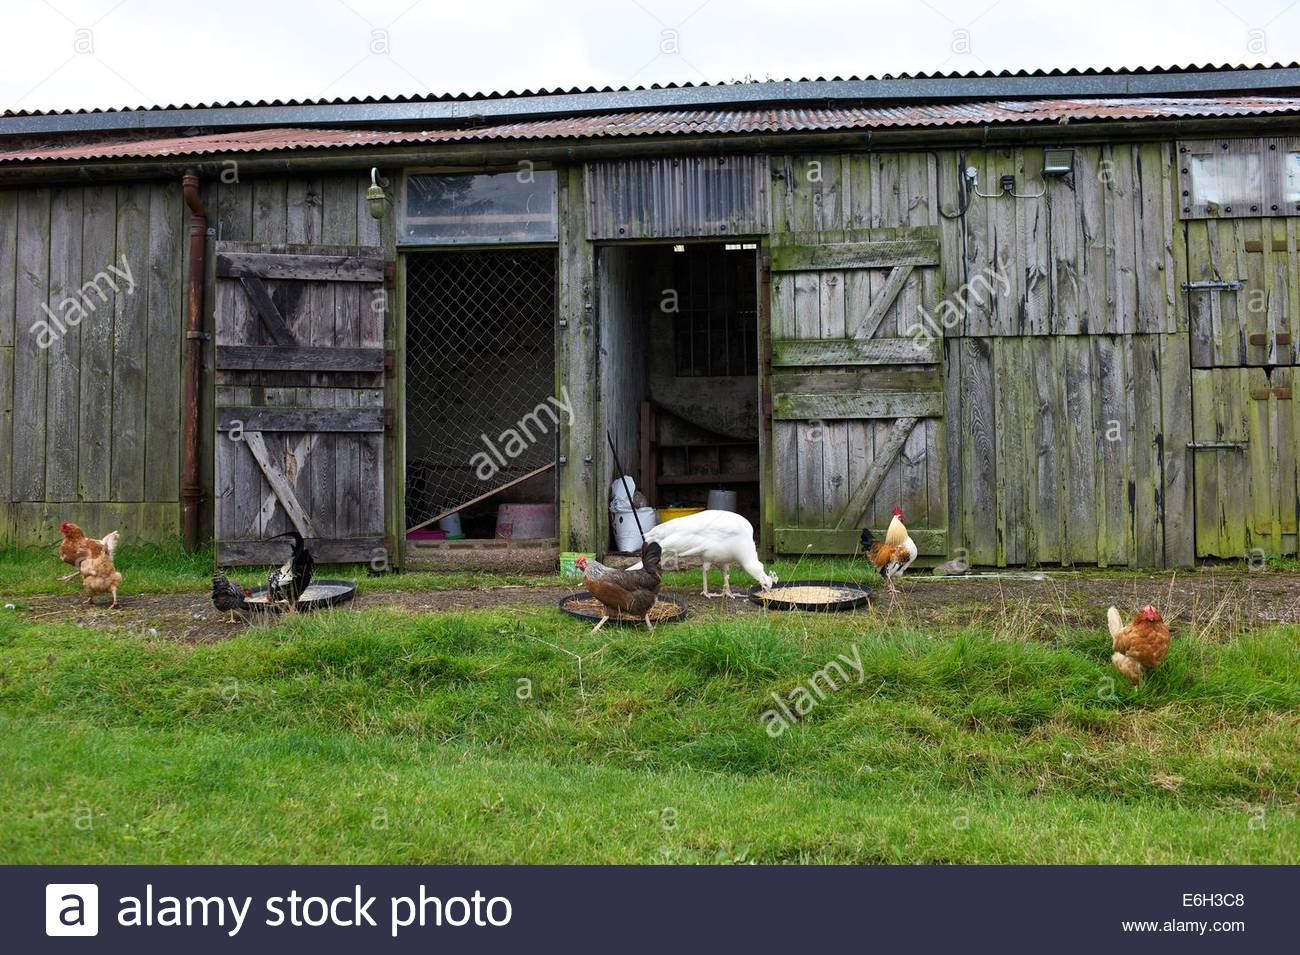 Poultry and a white Peacock feed outside a hen house on grain left for them on a farm in the Scottish Borders. - Stock Image